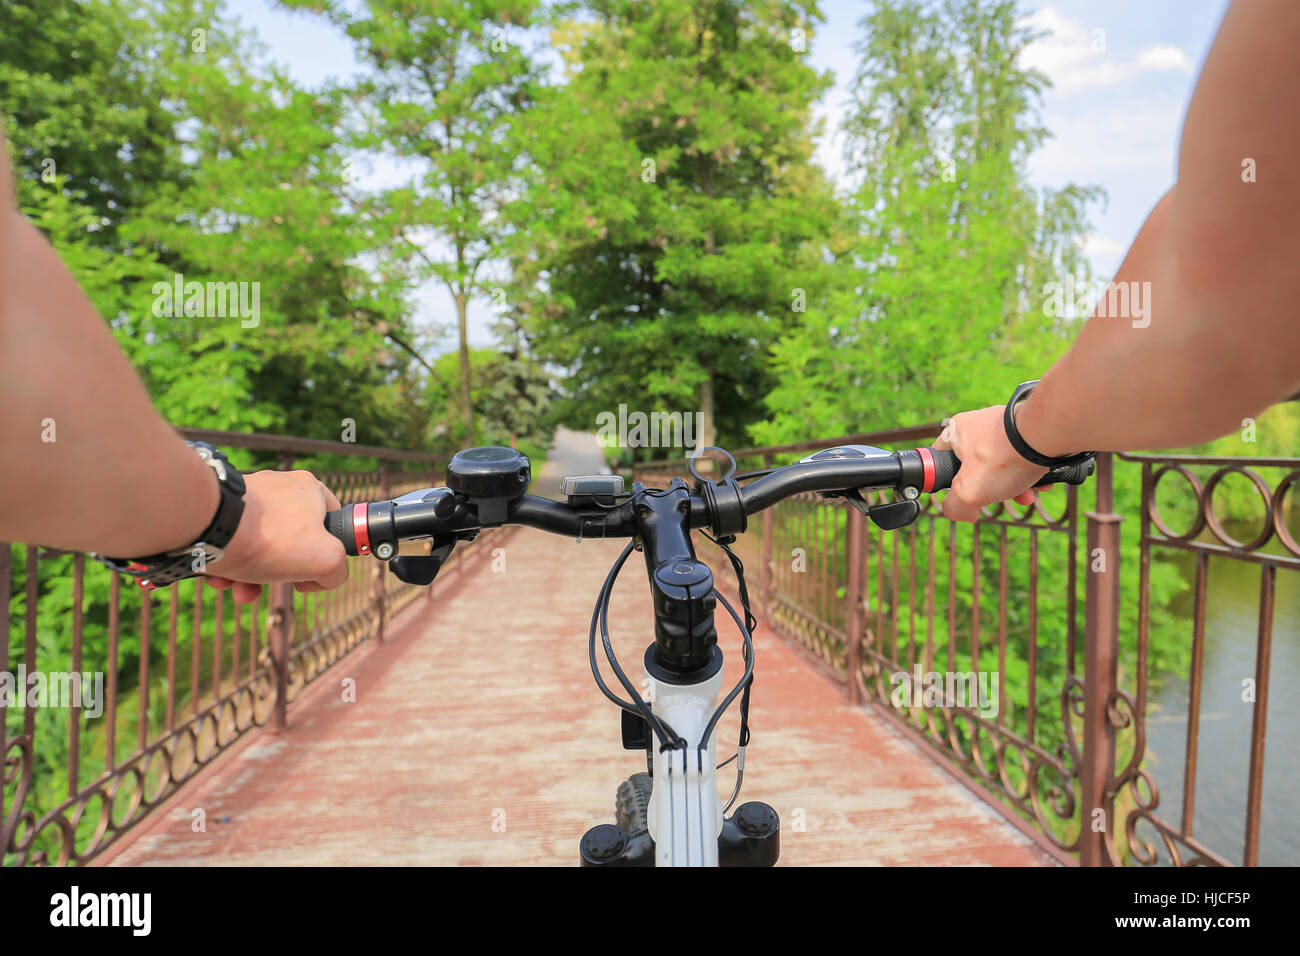 Bicycle. First person view - Stock Image